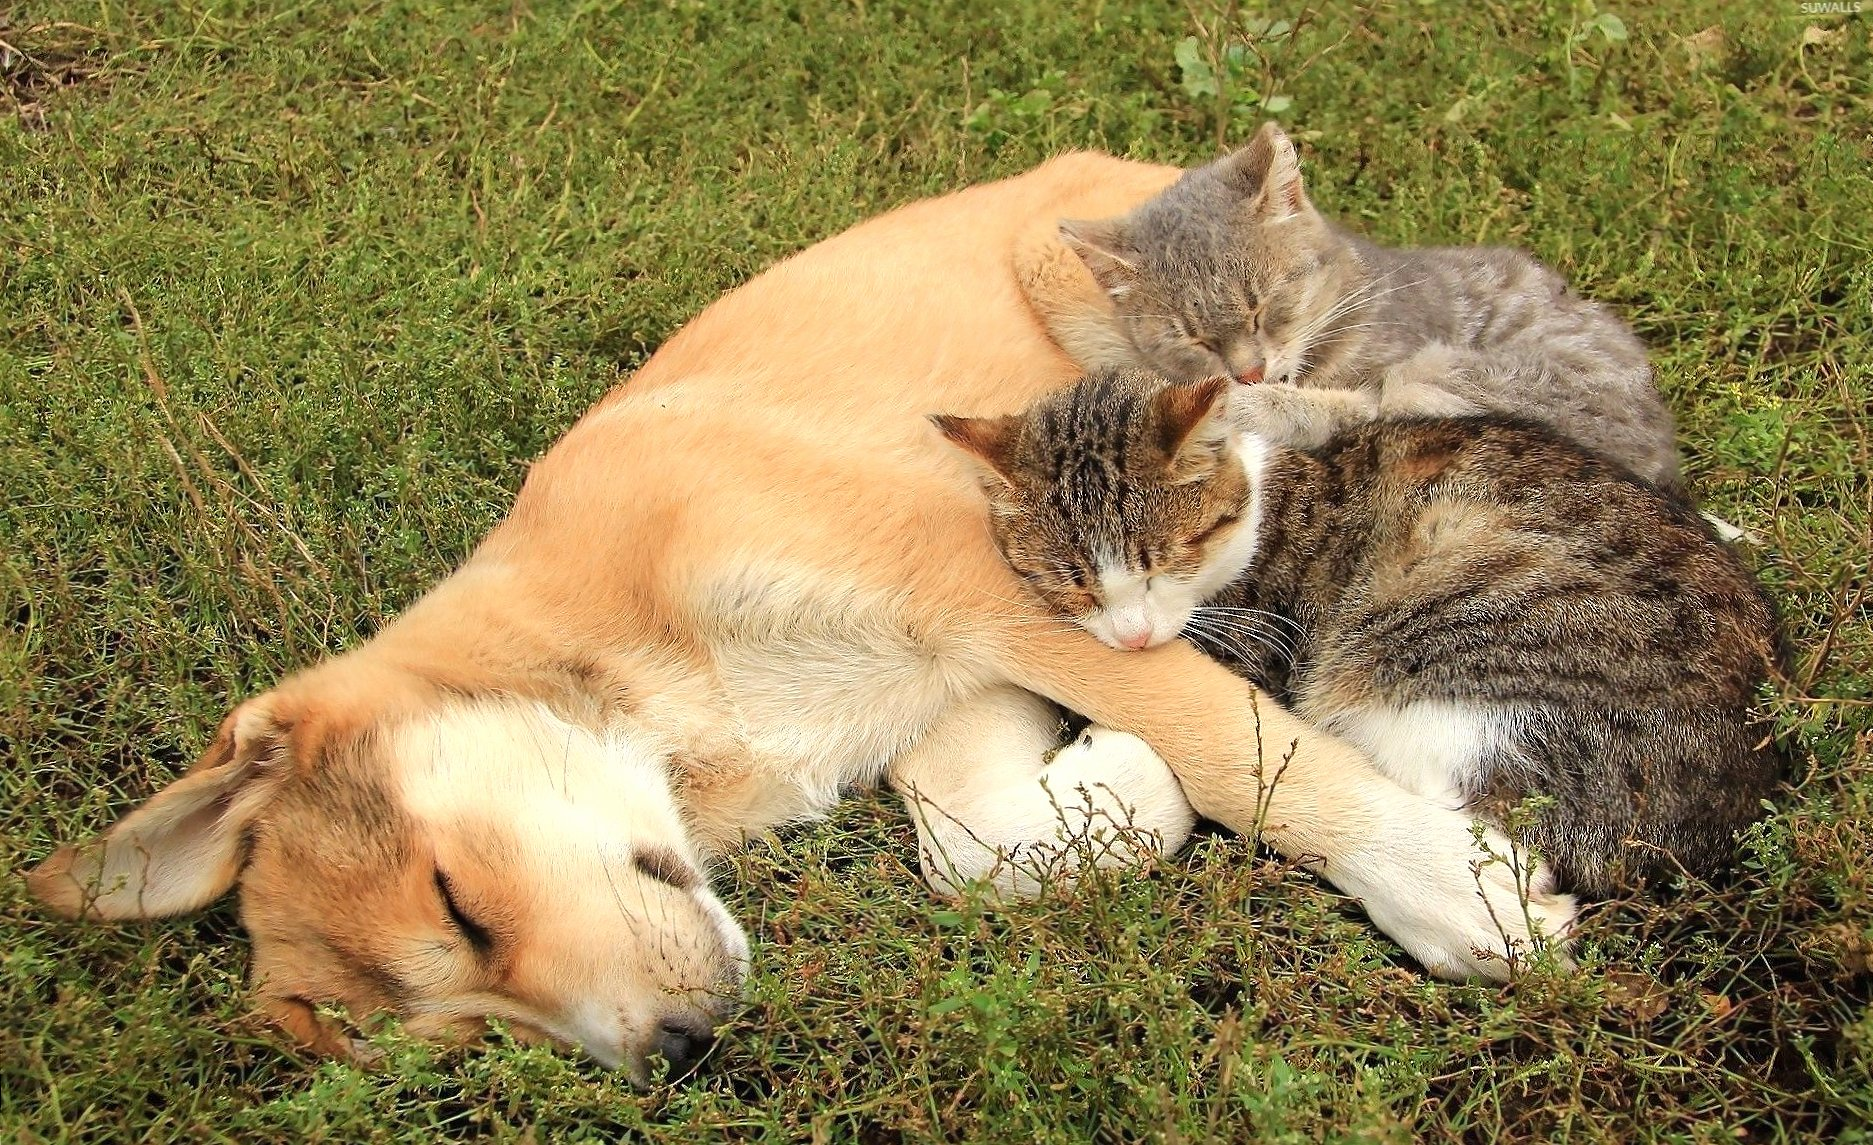 Cats resting on a sleeping dog wallpapers HD quality